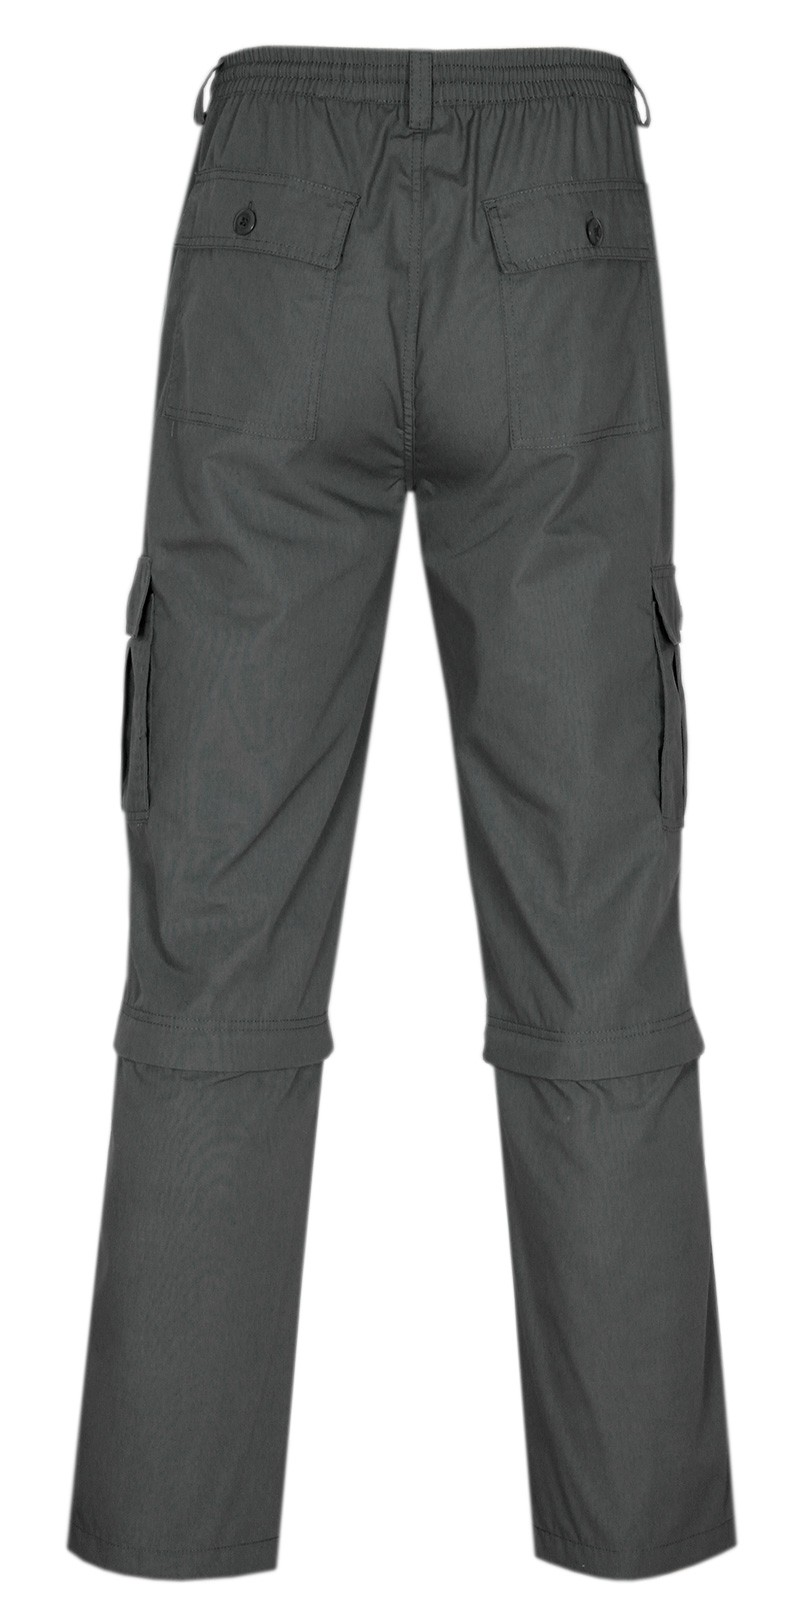 Herren Cargo Hose Zip Off - Anthrazit